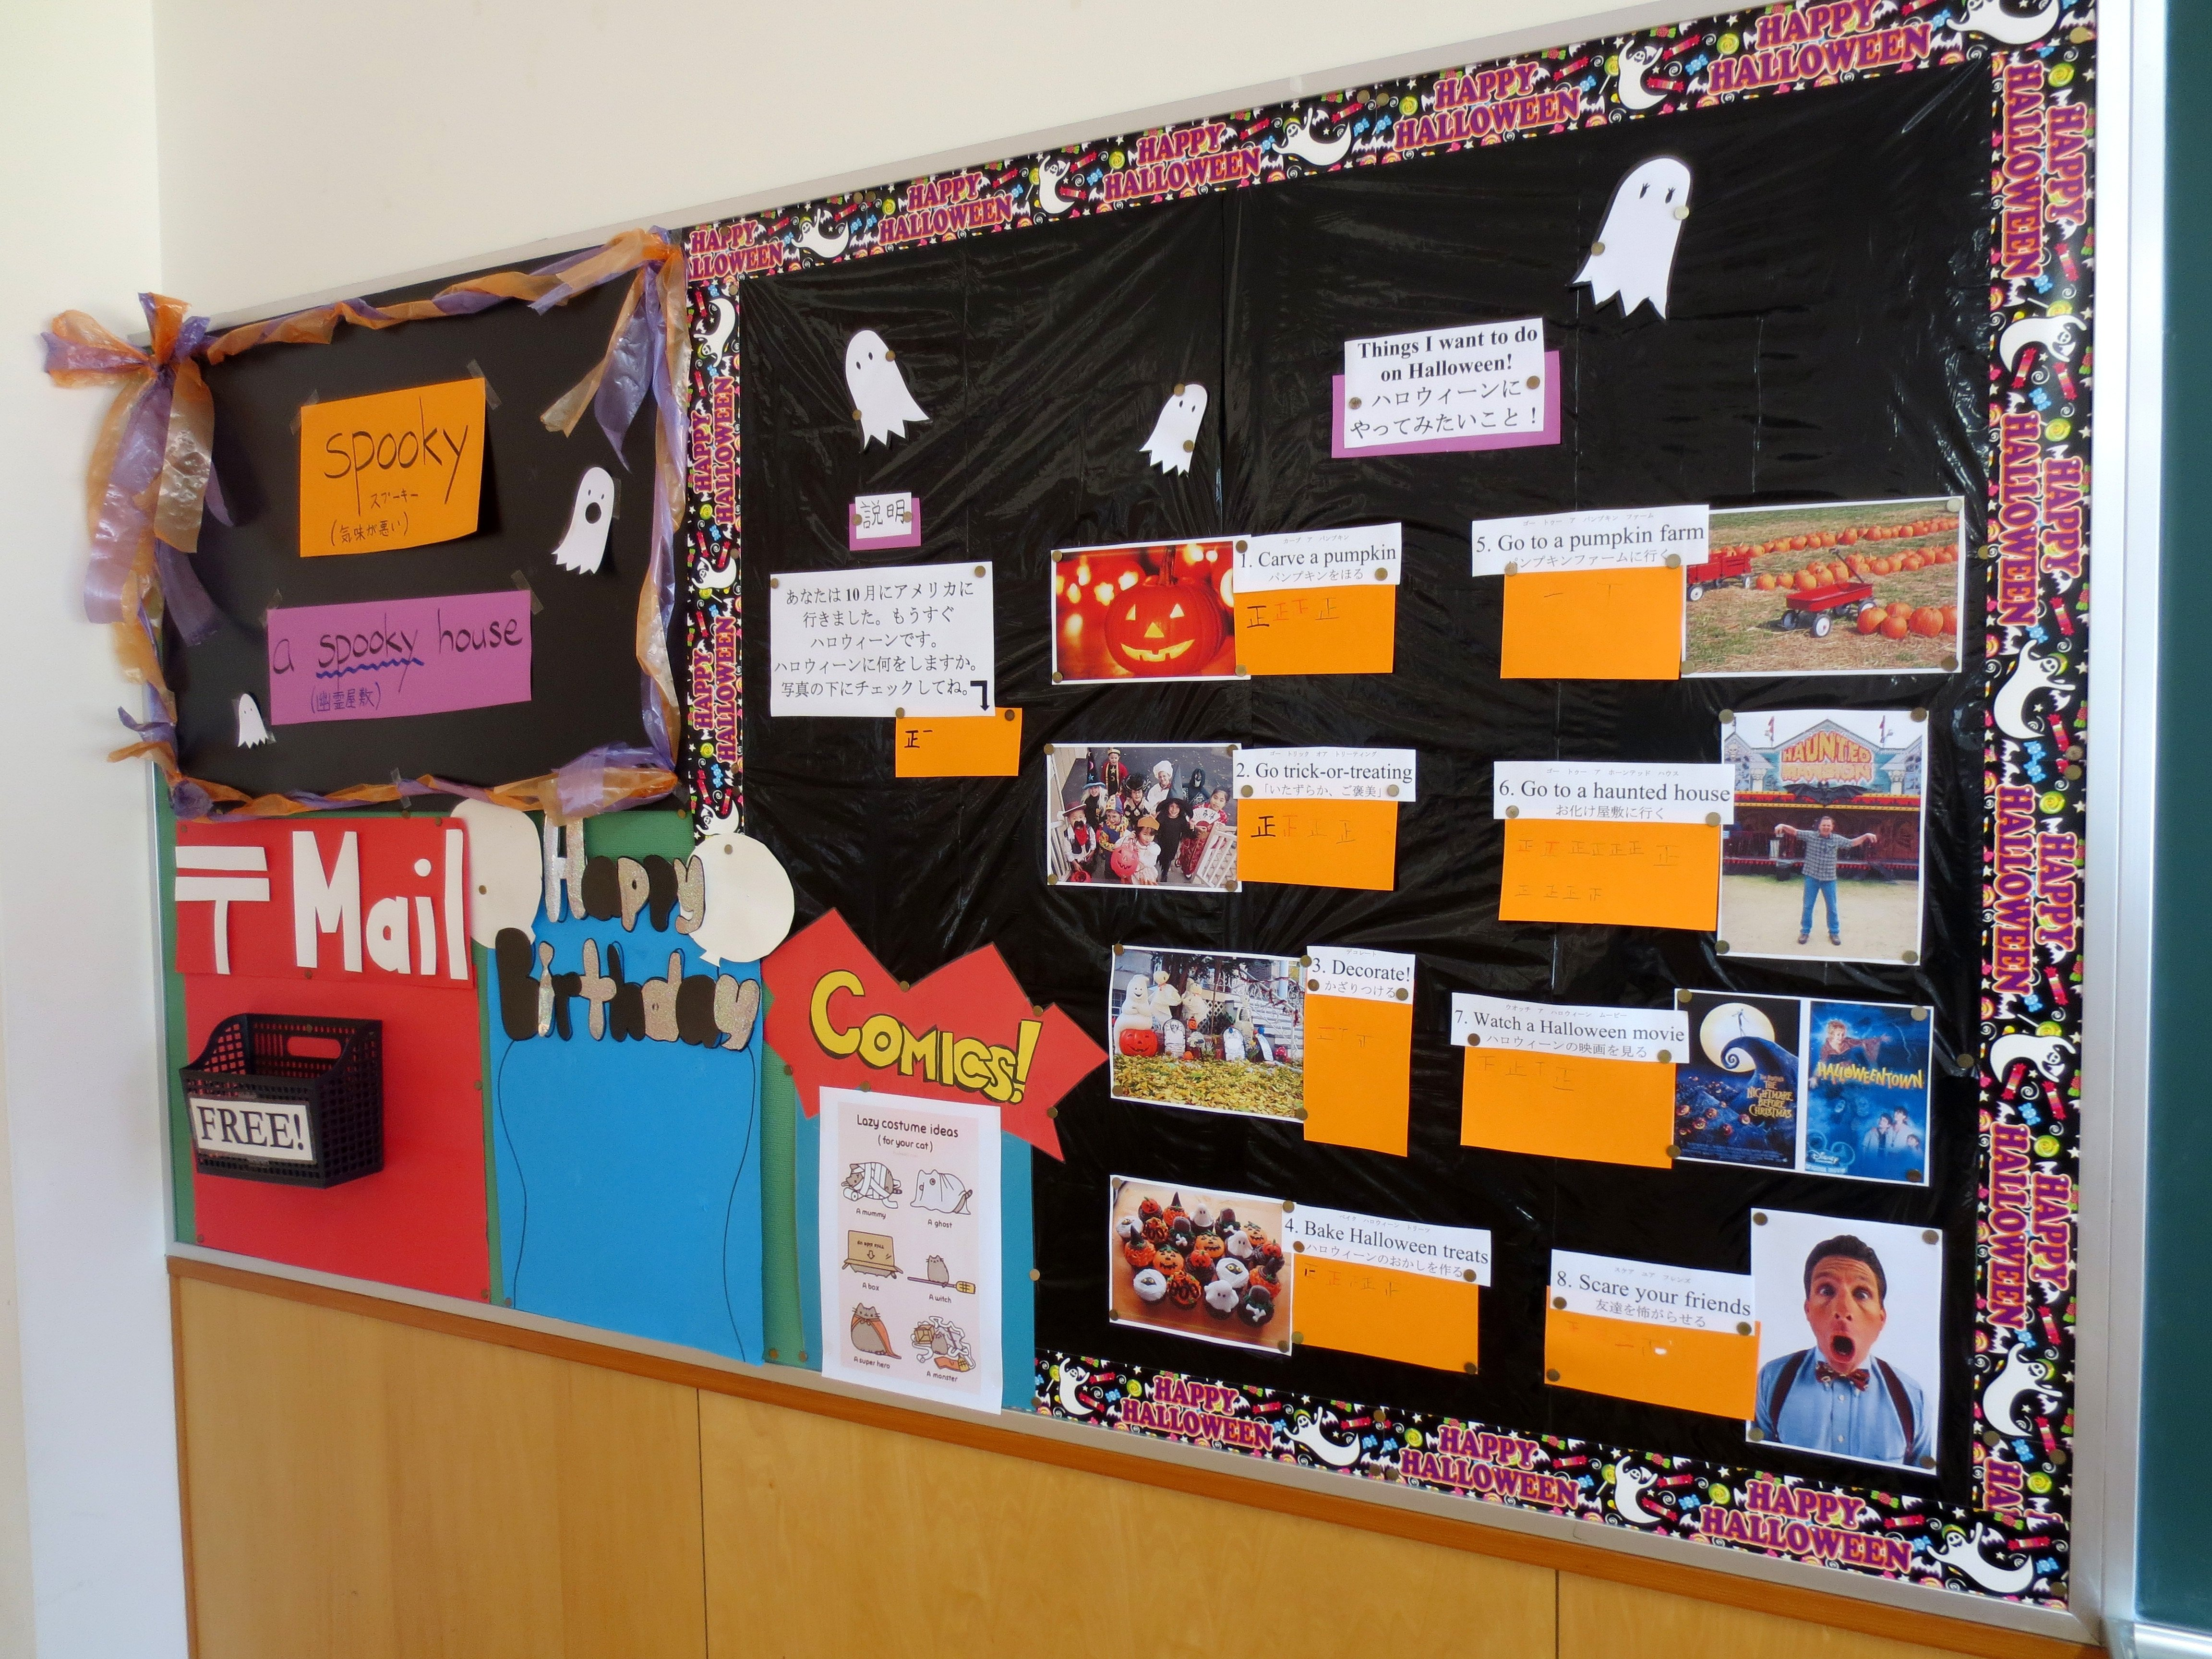 10 Pretty Halloween School Bulletin Board Ideas october bulletin board halloween theme e7b4a0e695b5e381aae383a9e382a4e38395 2020